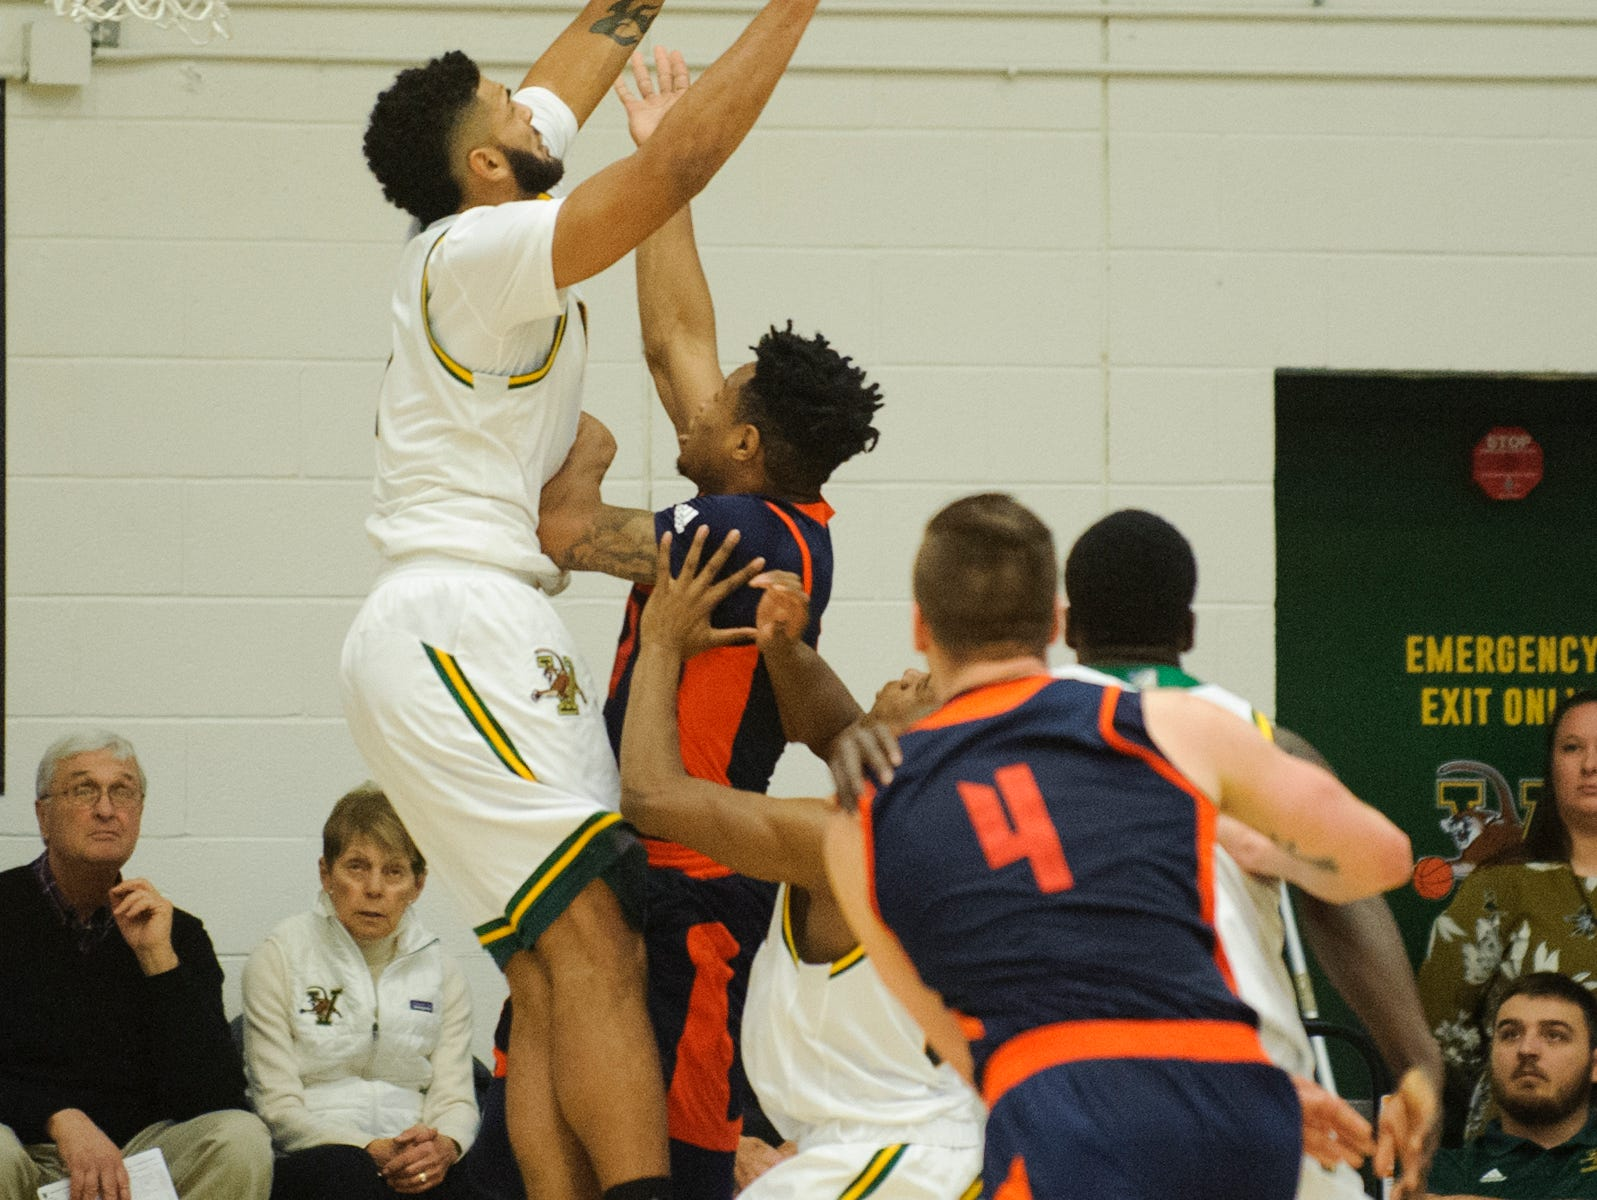 Vermont forward Anthony Lamb (3) leaps to block a shot during the men's basketball game between the Bucknell Bison and the Vermont Catamounts at Patrick Gym on Sunday afternoon November 25, 2018 in Burlington.